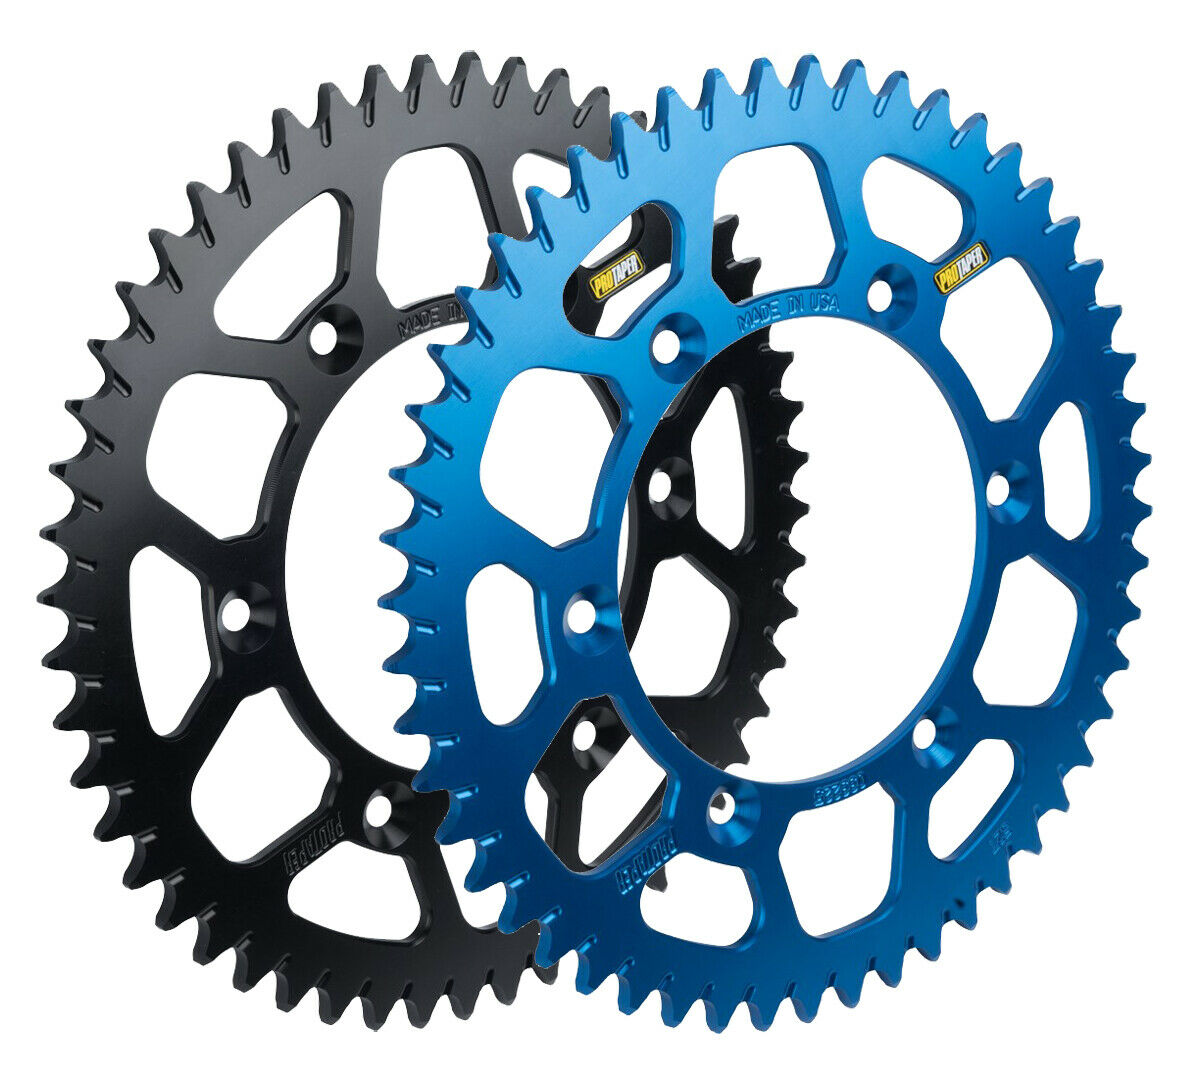 Pro Taper Race Spec black rear sprocket for Suzuki DRZ400 RM250-47 to 52 Tooth